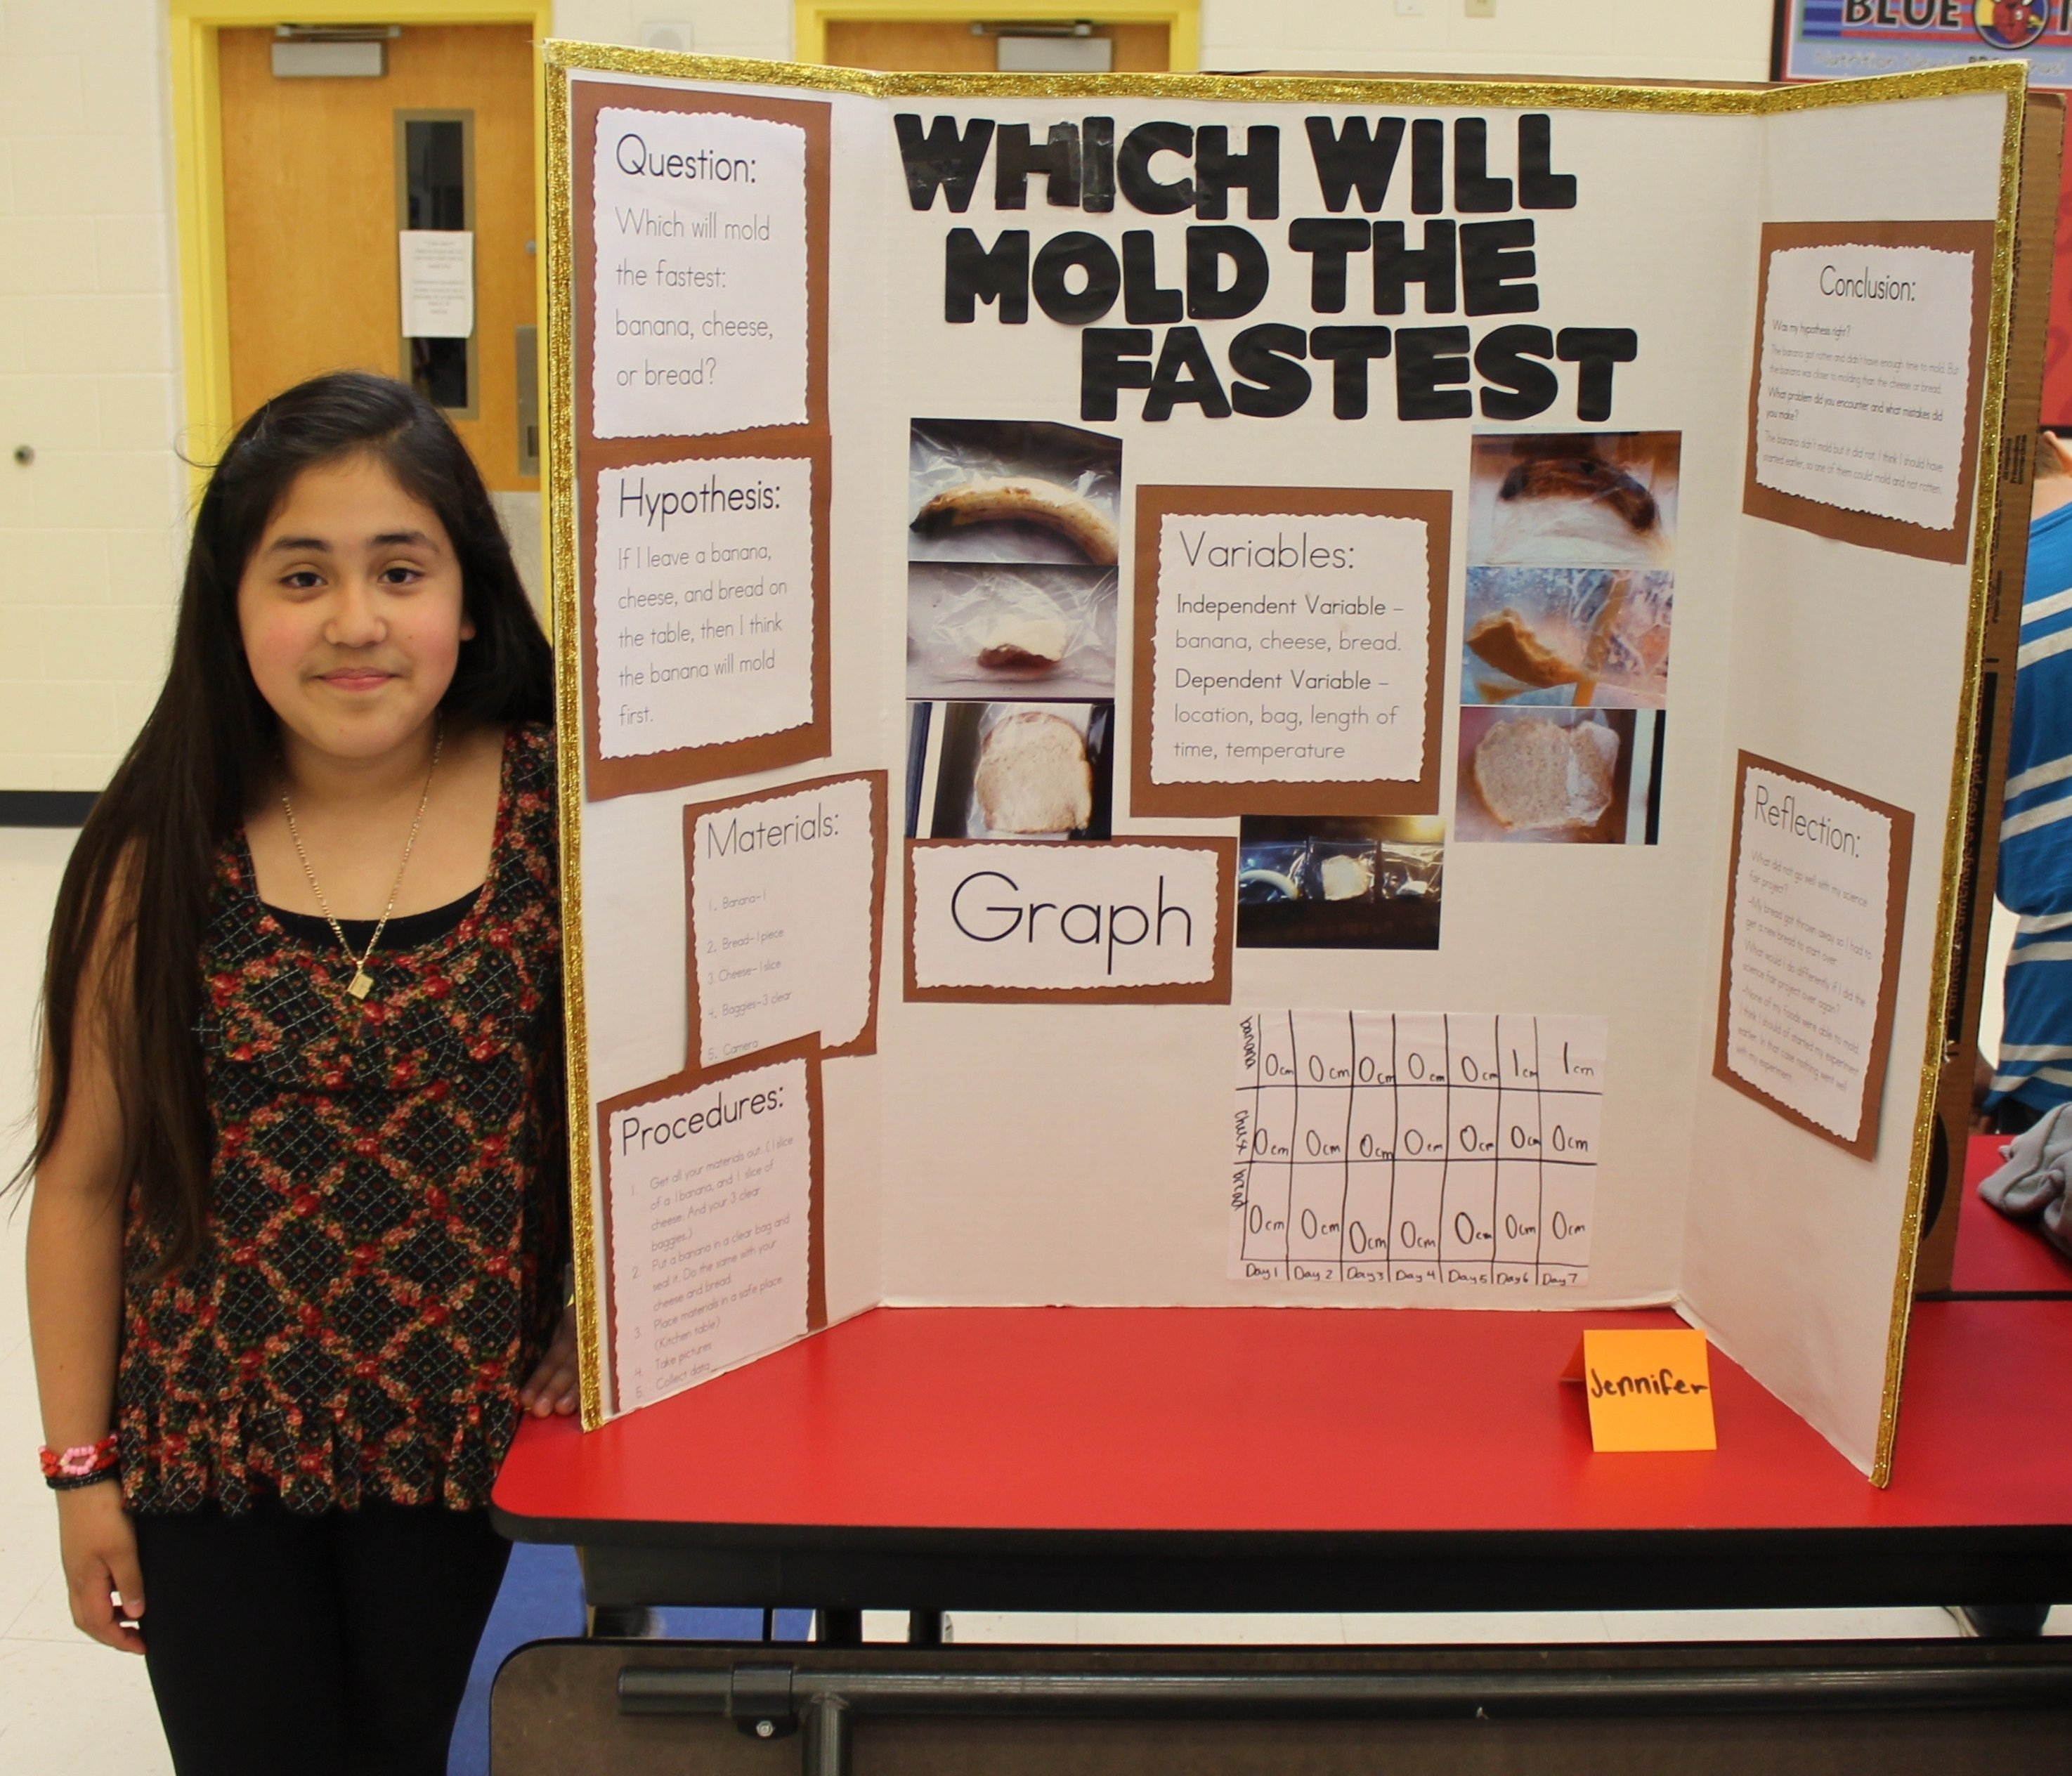 10 Elegant 3Rd Grade Science Fair Ideas easy science fair projects for 3rd grade idea google search 10 2021